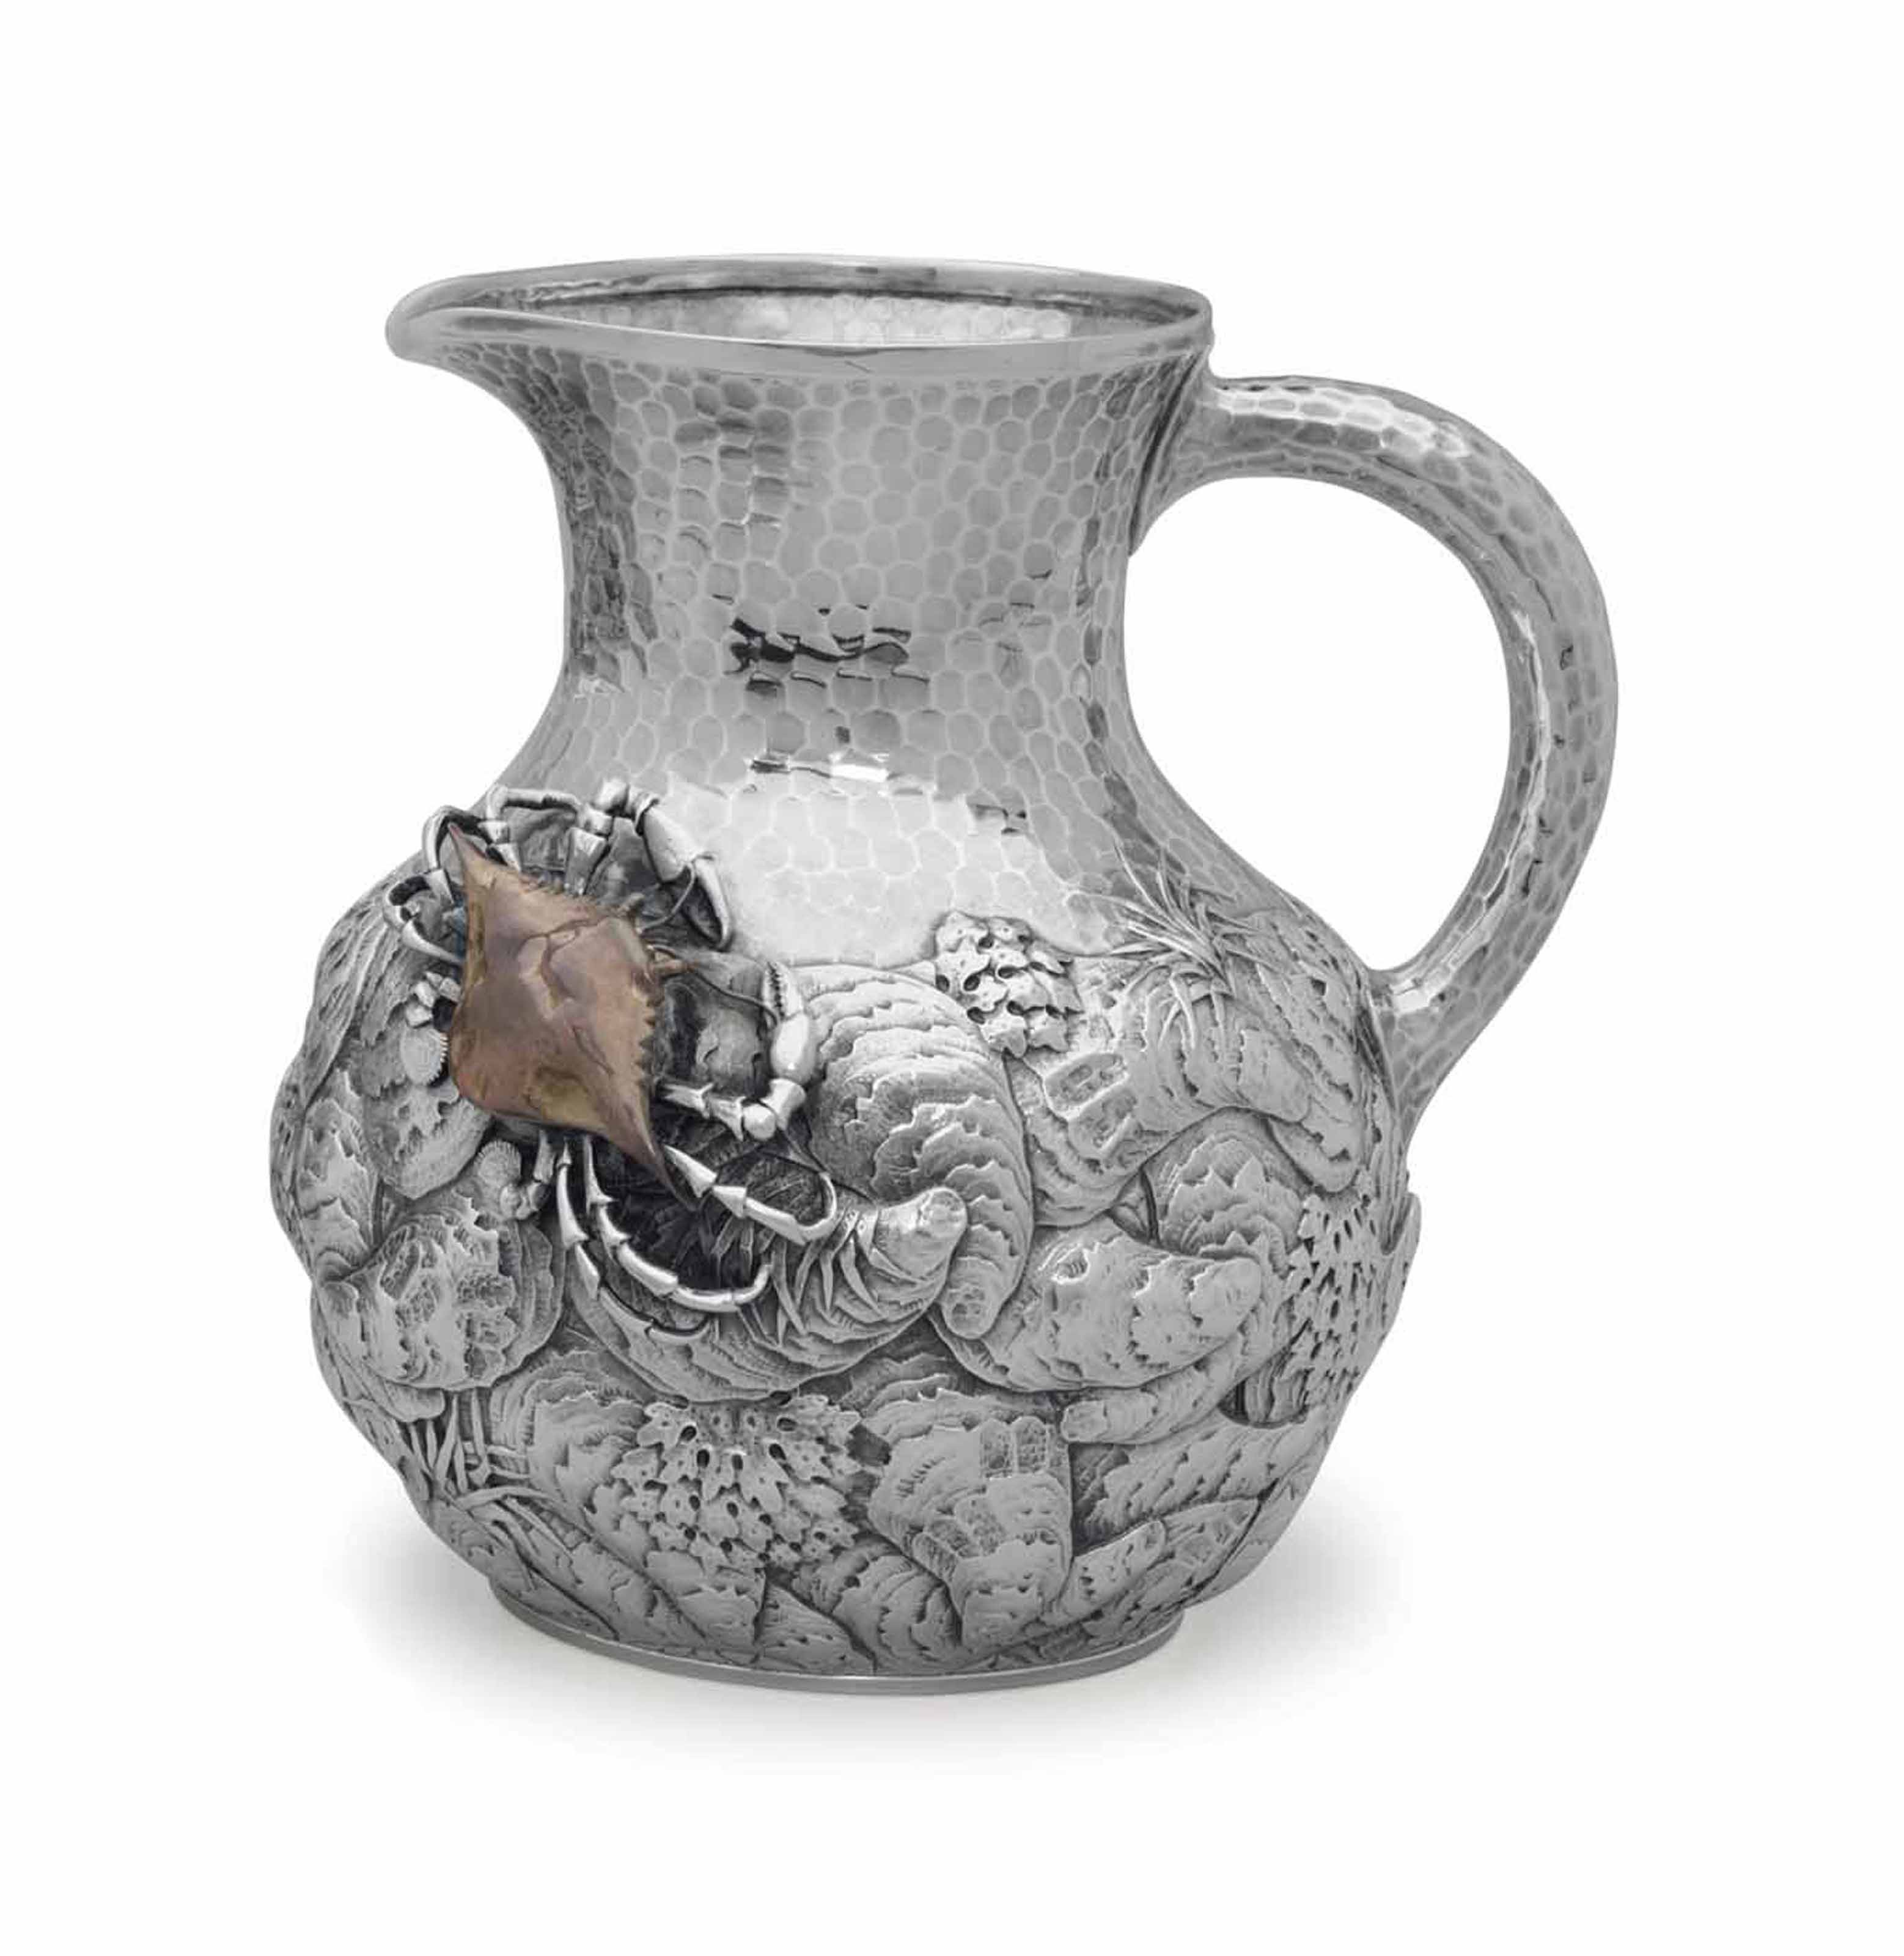 A SILVER AND MIXED-METAL PITCHER